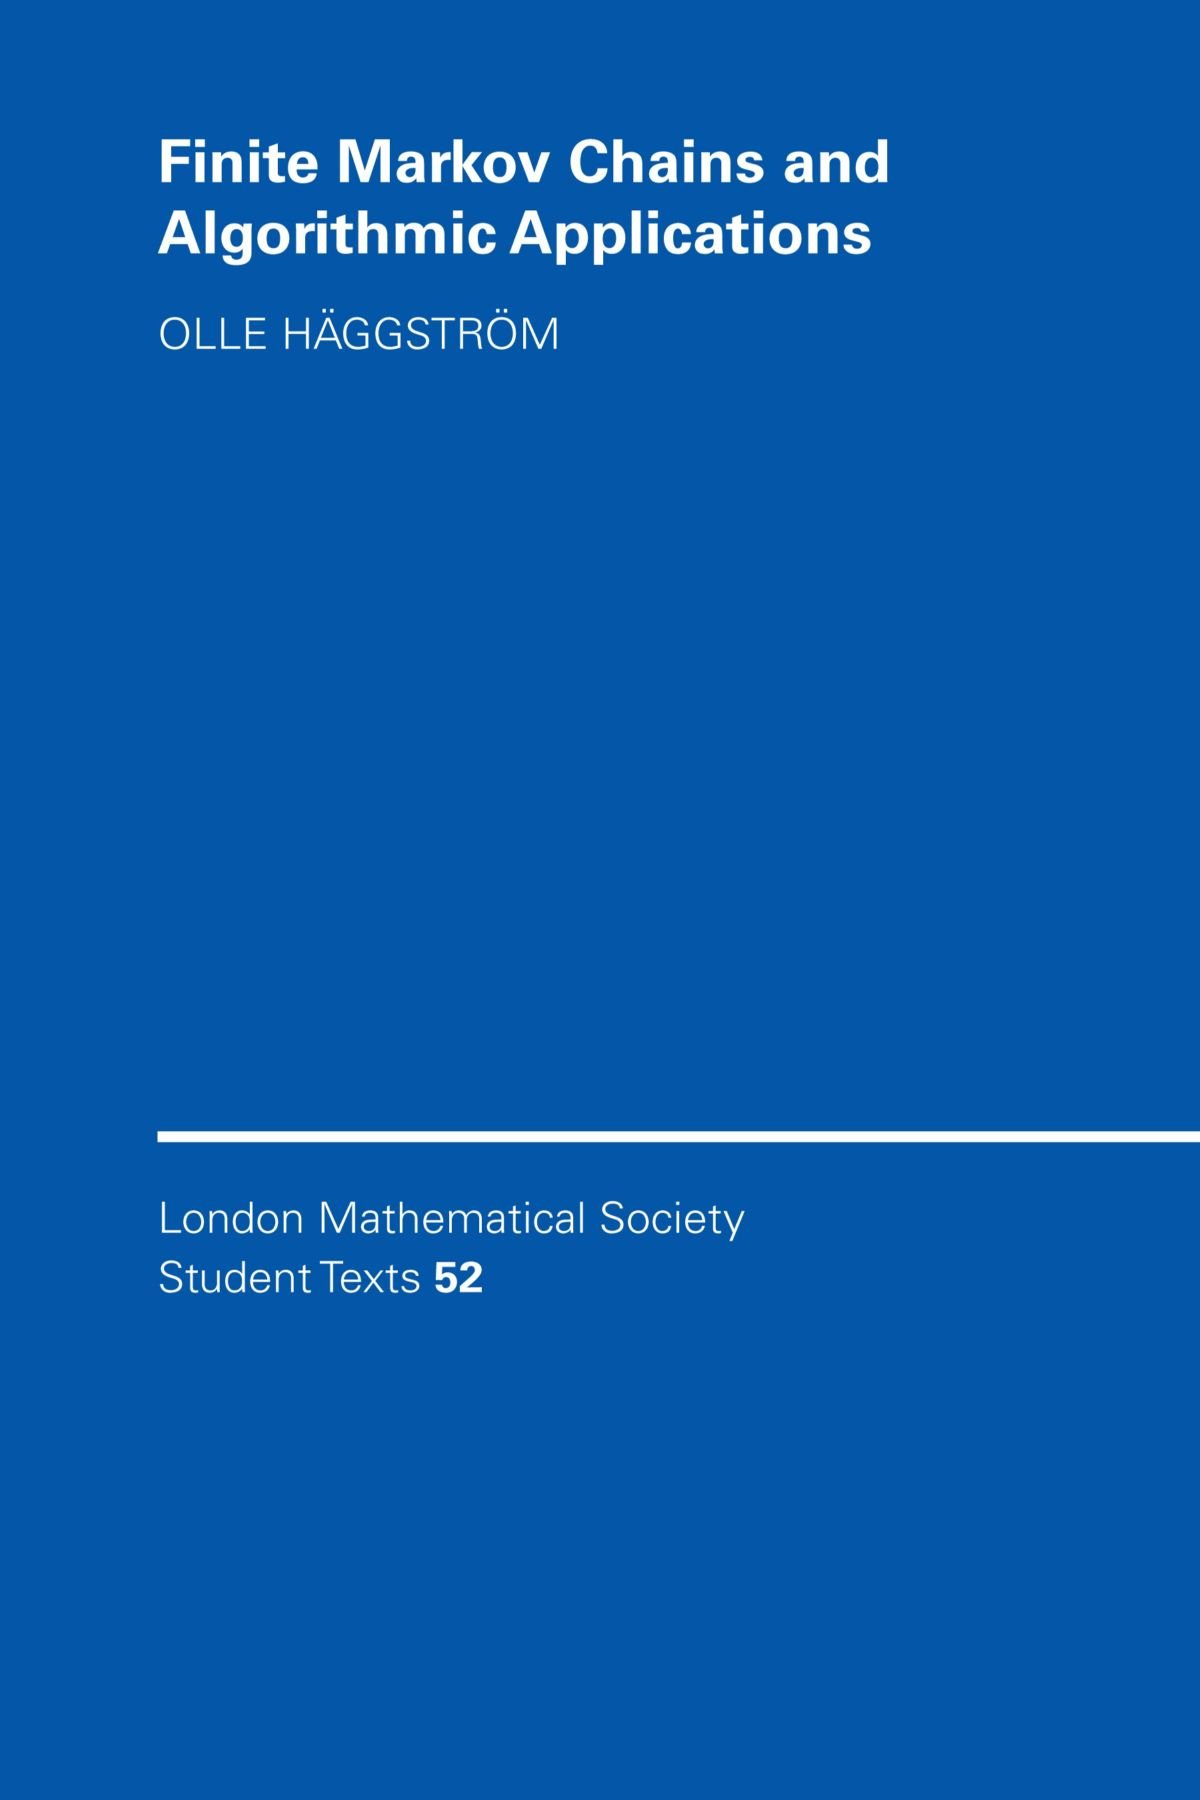 Finite Markov Chains and Algorithmic Applications (London Mathematical Society Student Texts, Band 52)